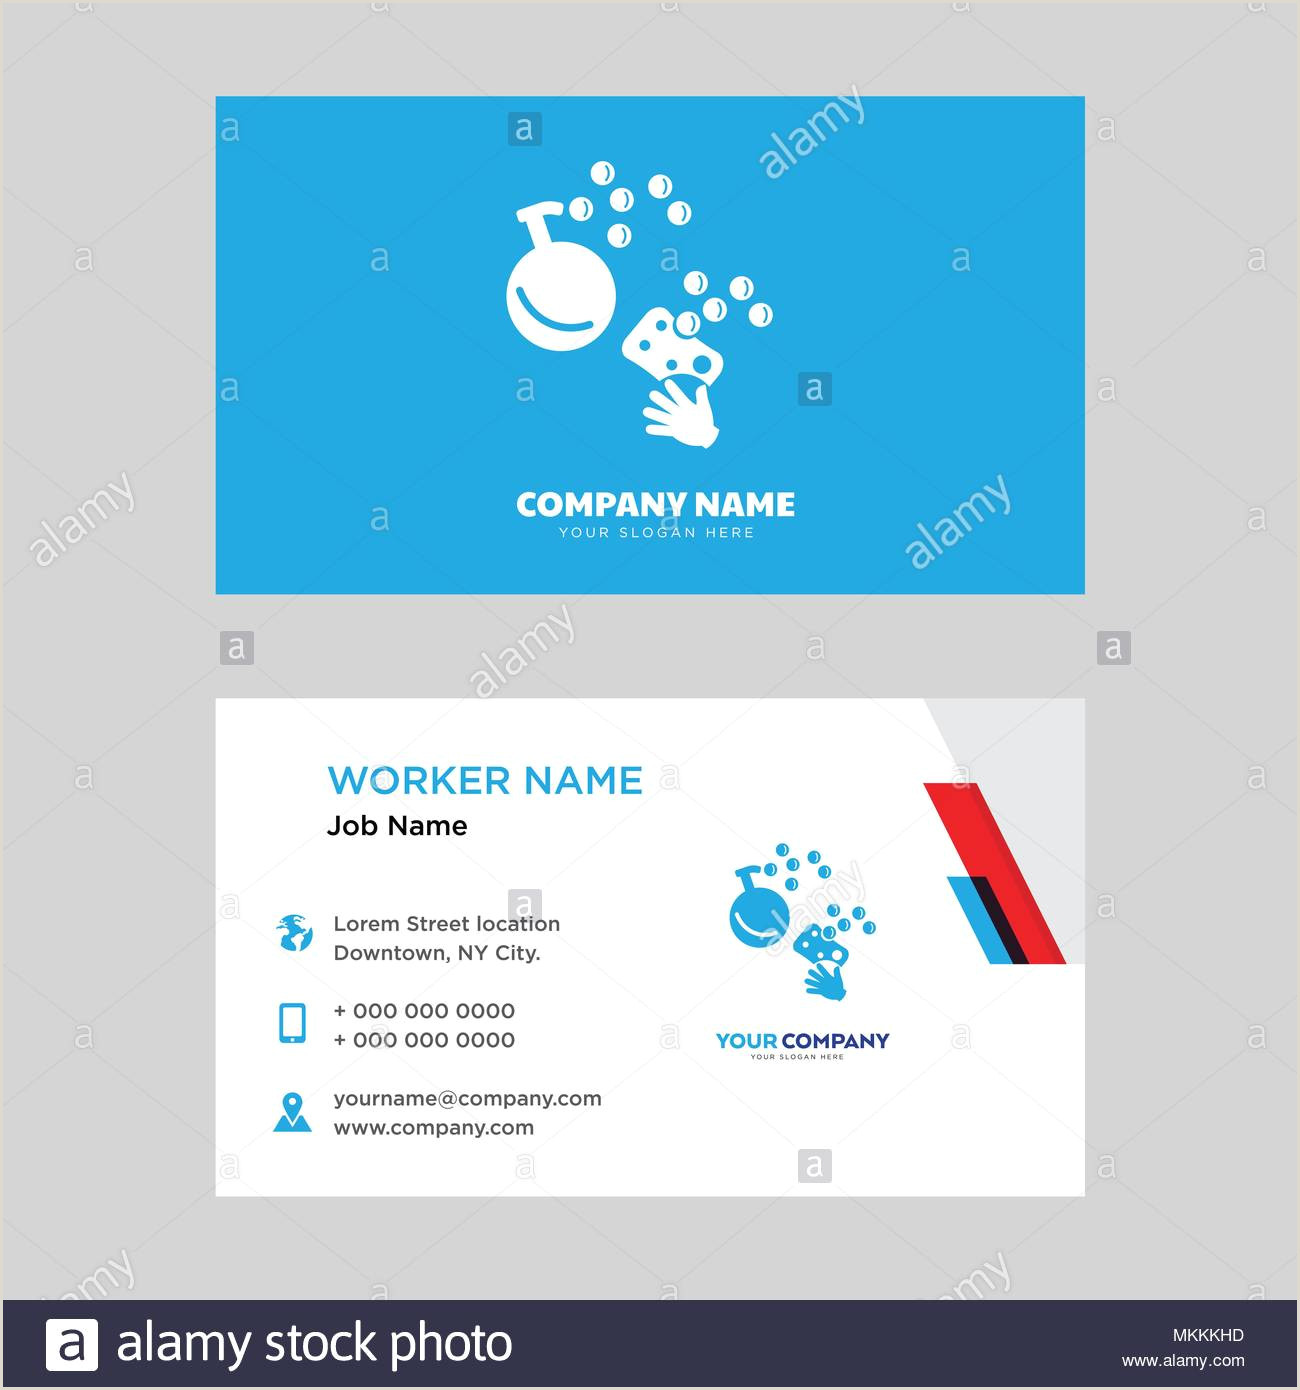 Best Business Cards For Soap Labels Soap Business Card Design Template Visiting For Your